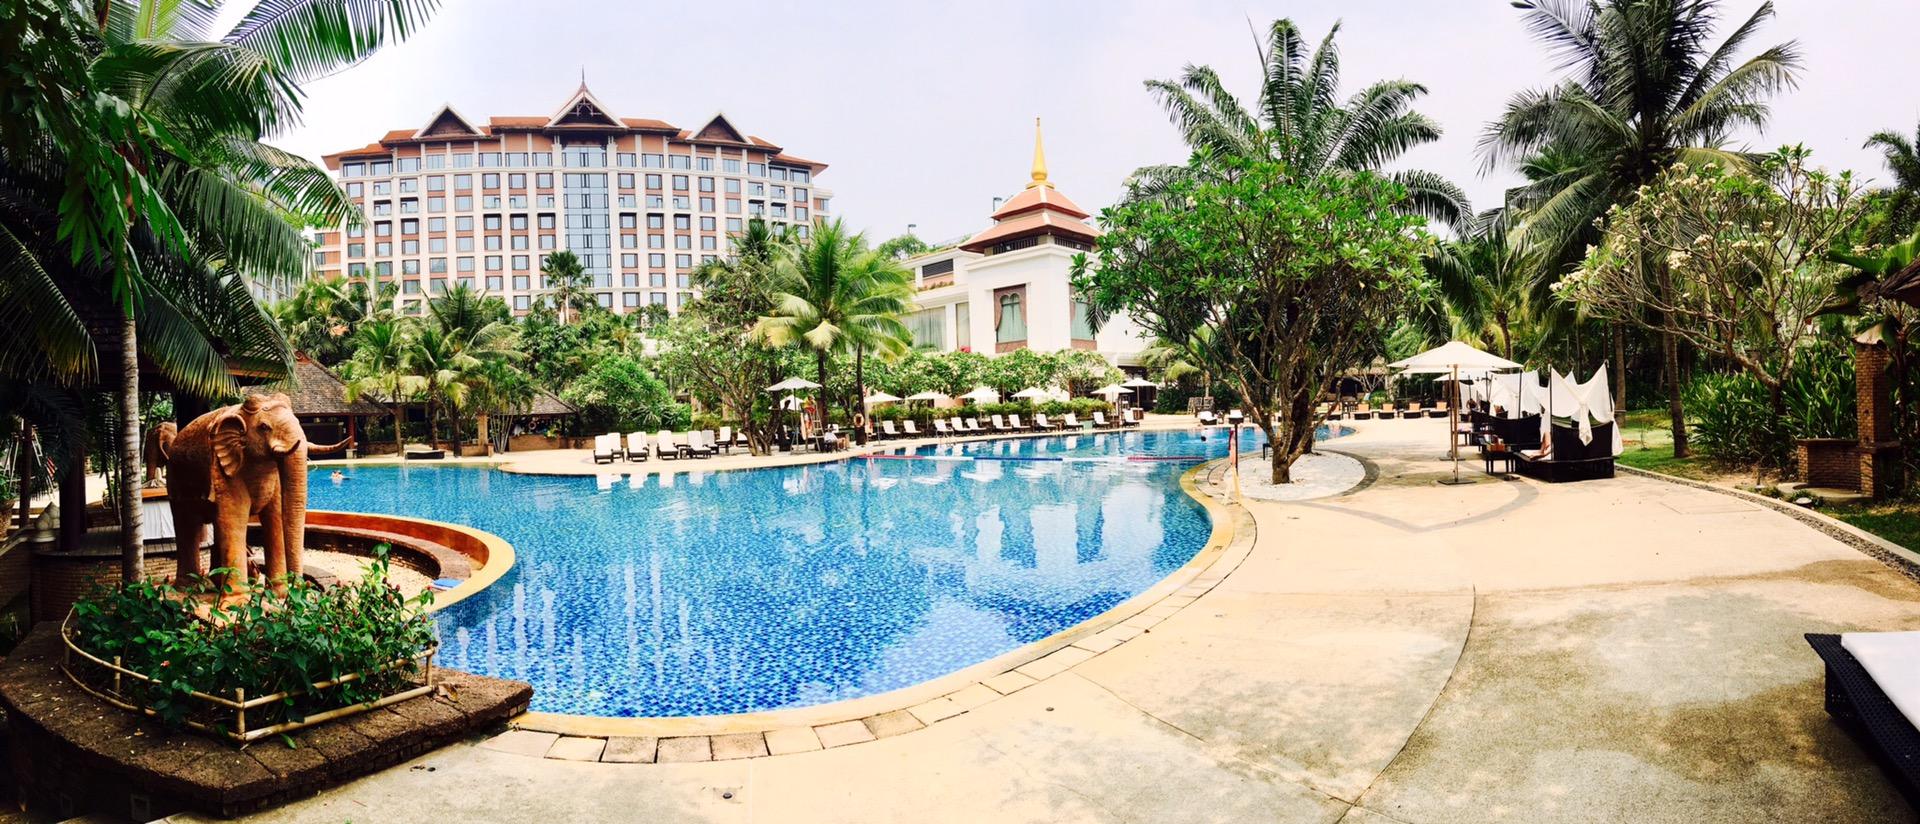 The largest hotel swimming pool in Chiang Mai is found at Shangri-la Chiang Mai